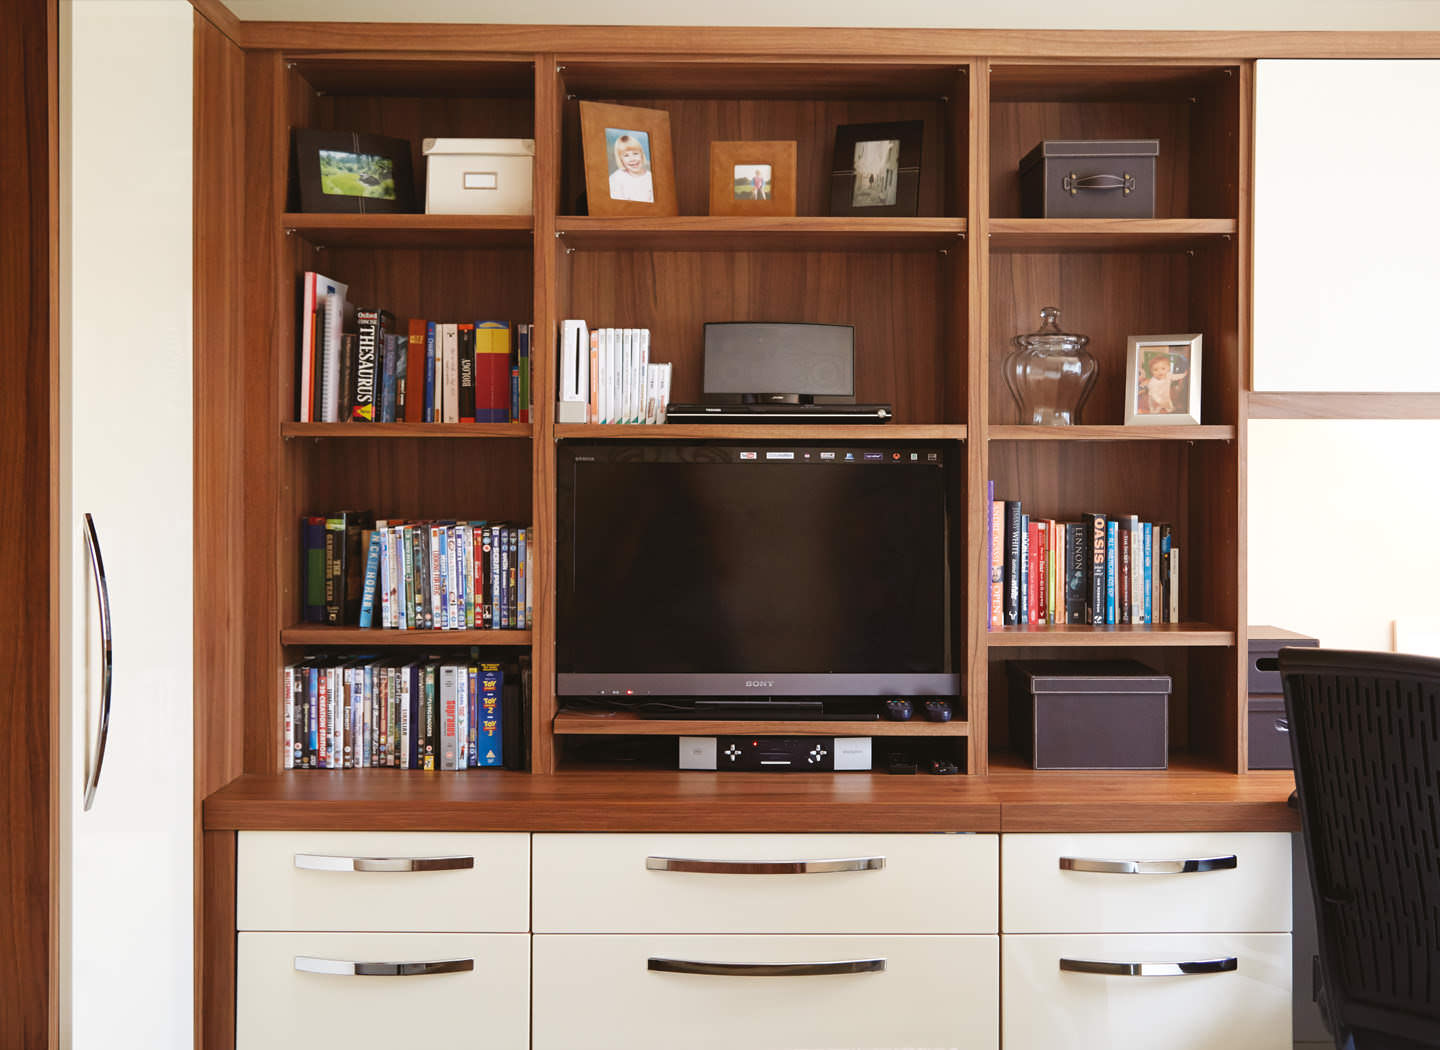 Case study showing fitted cabinet in study bedroom